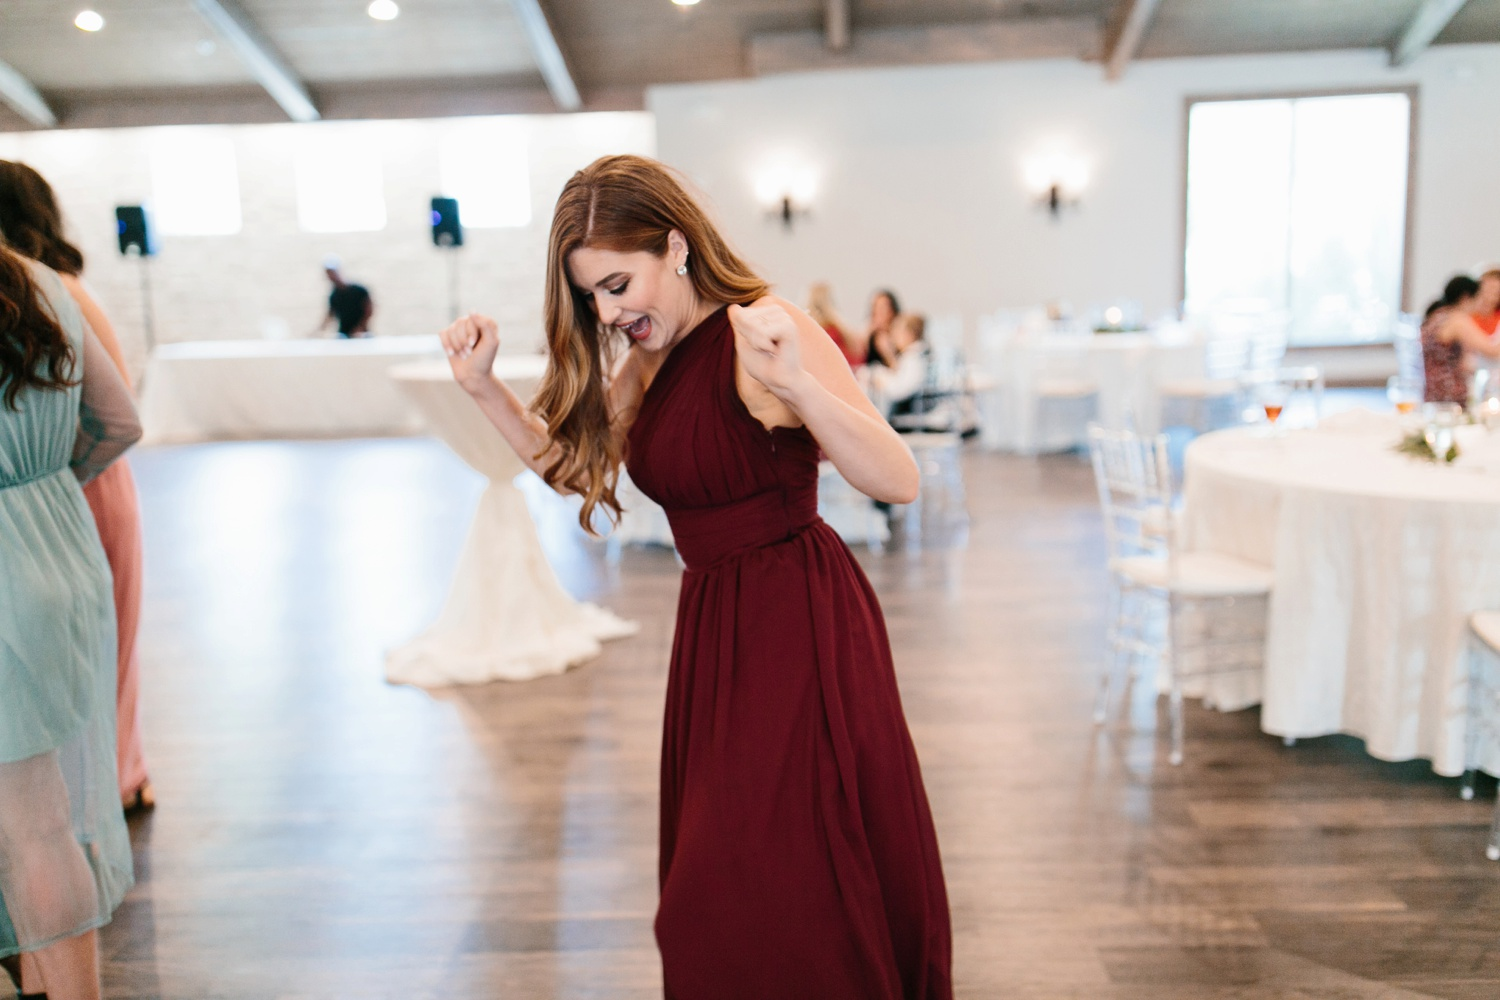 Grant + Lysette | a vibrant, deep burgundy and navy, and mixed metals wedding at Hidden Pines Chapel by North Texas Wedding Photographer Rachel Meagan Photography 161